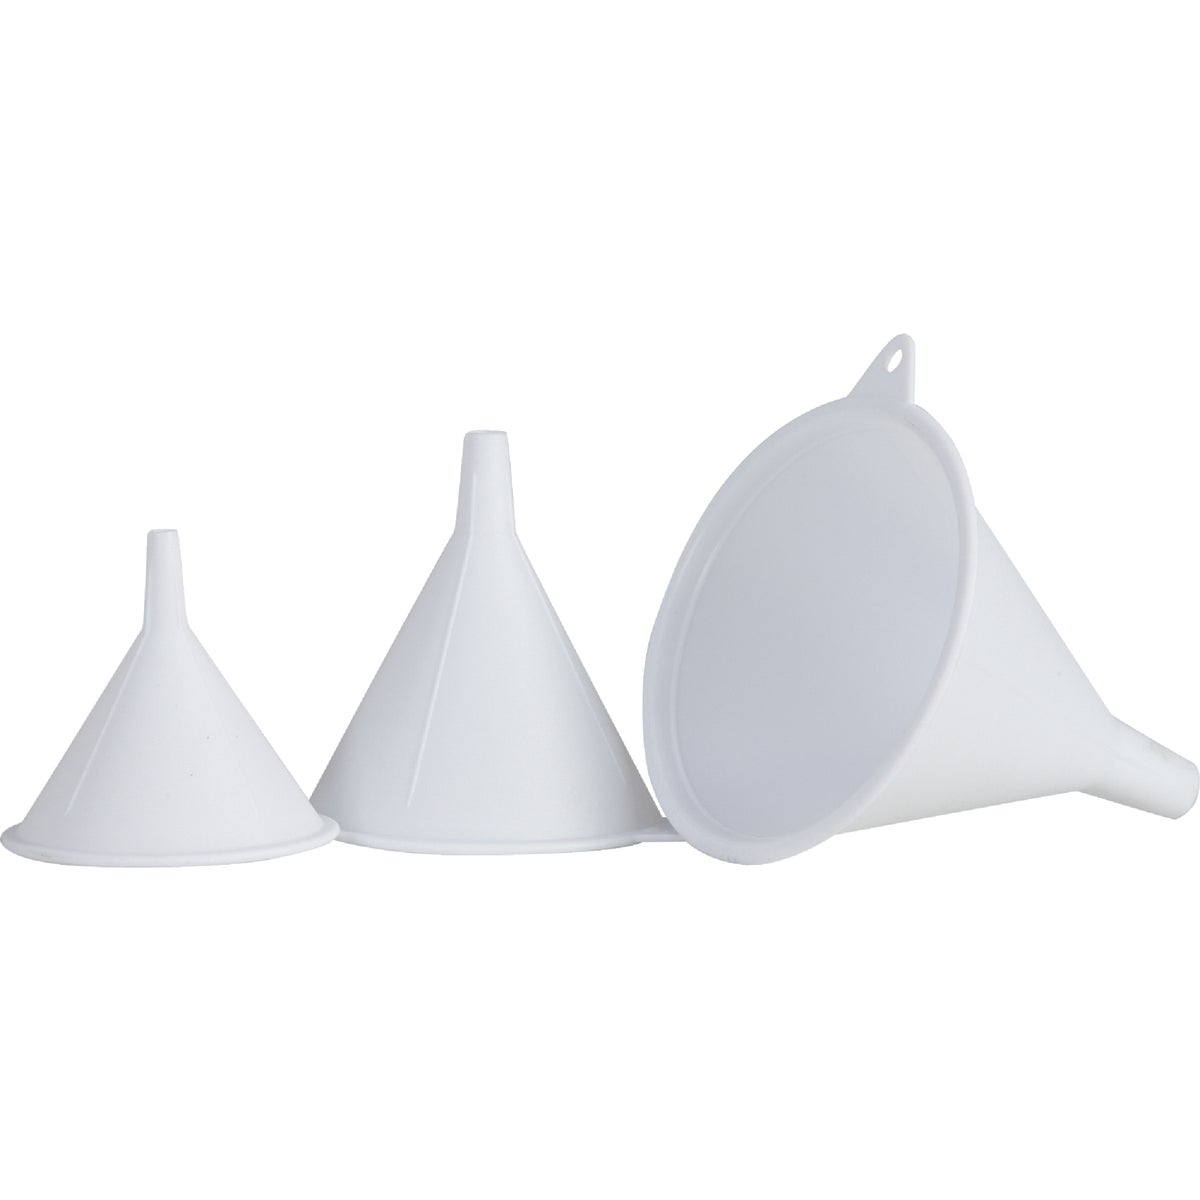 3PC PLASTIC FUNNEL